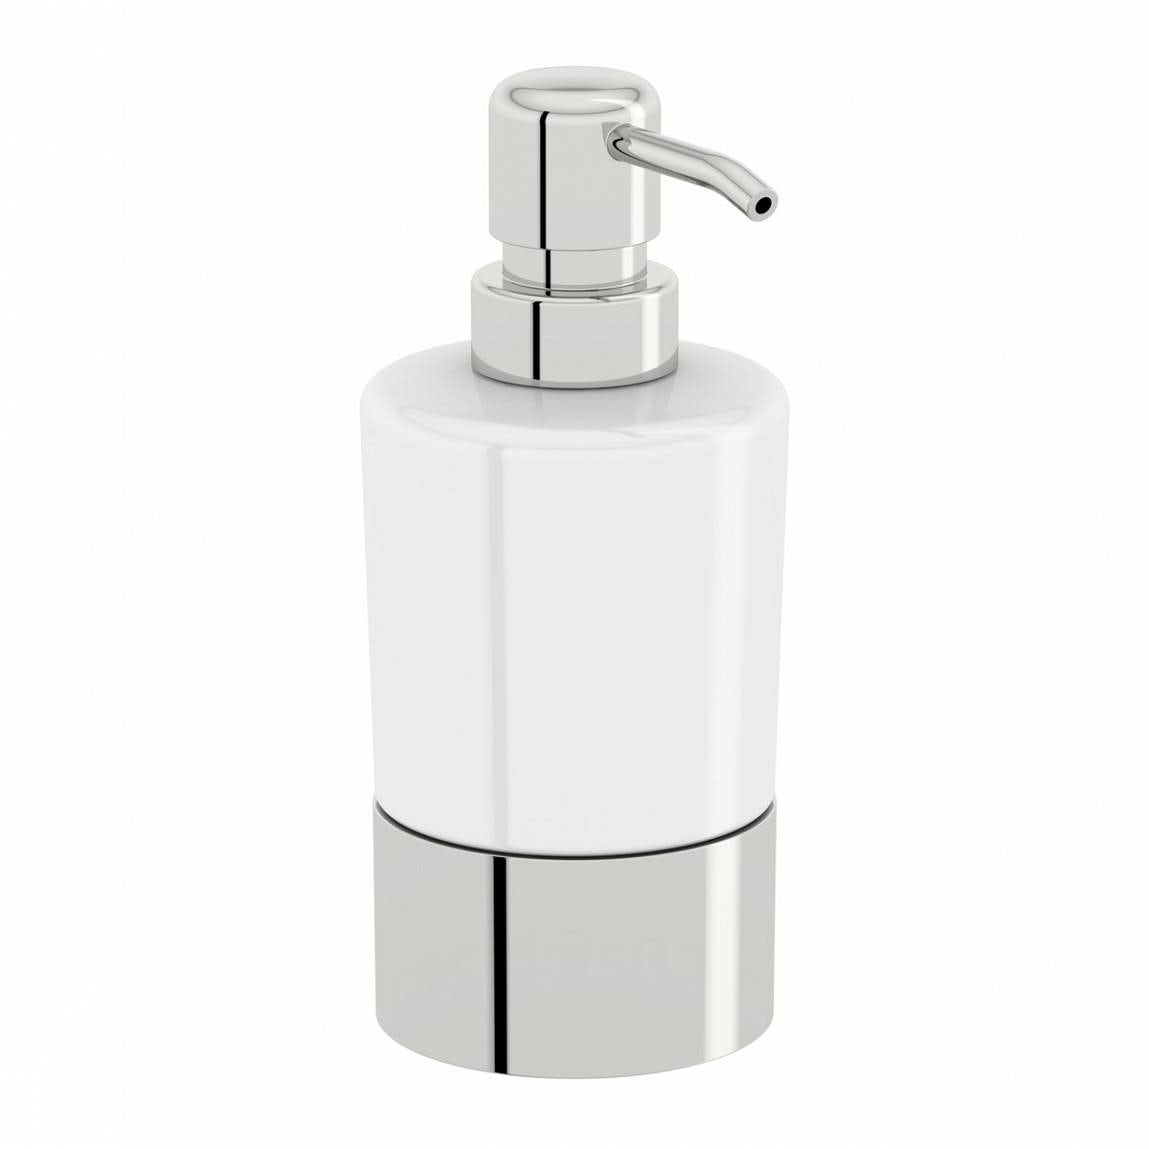 Options Freestanding Ceramic Soap Pump Dispenser